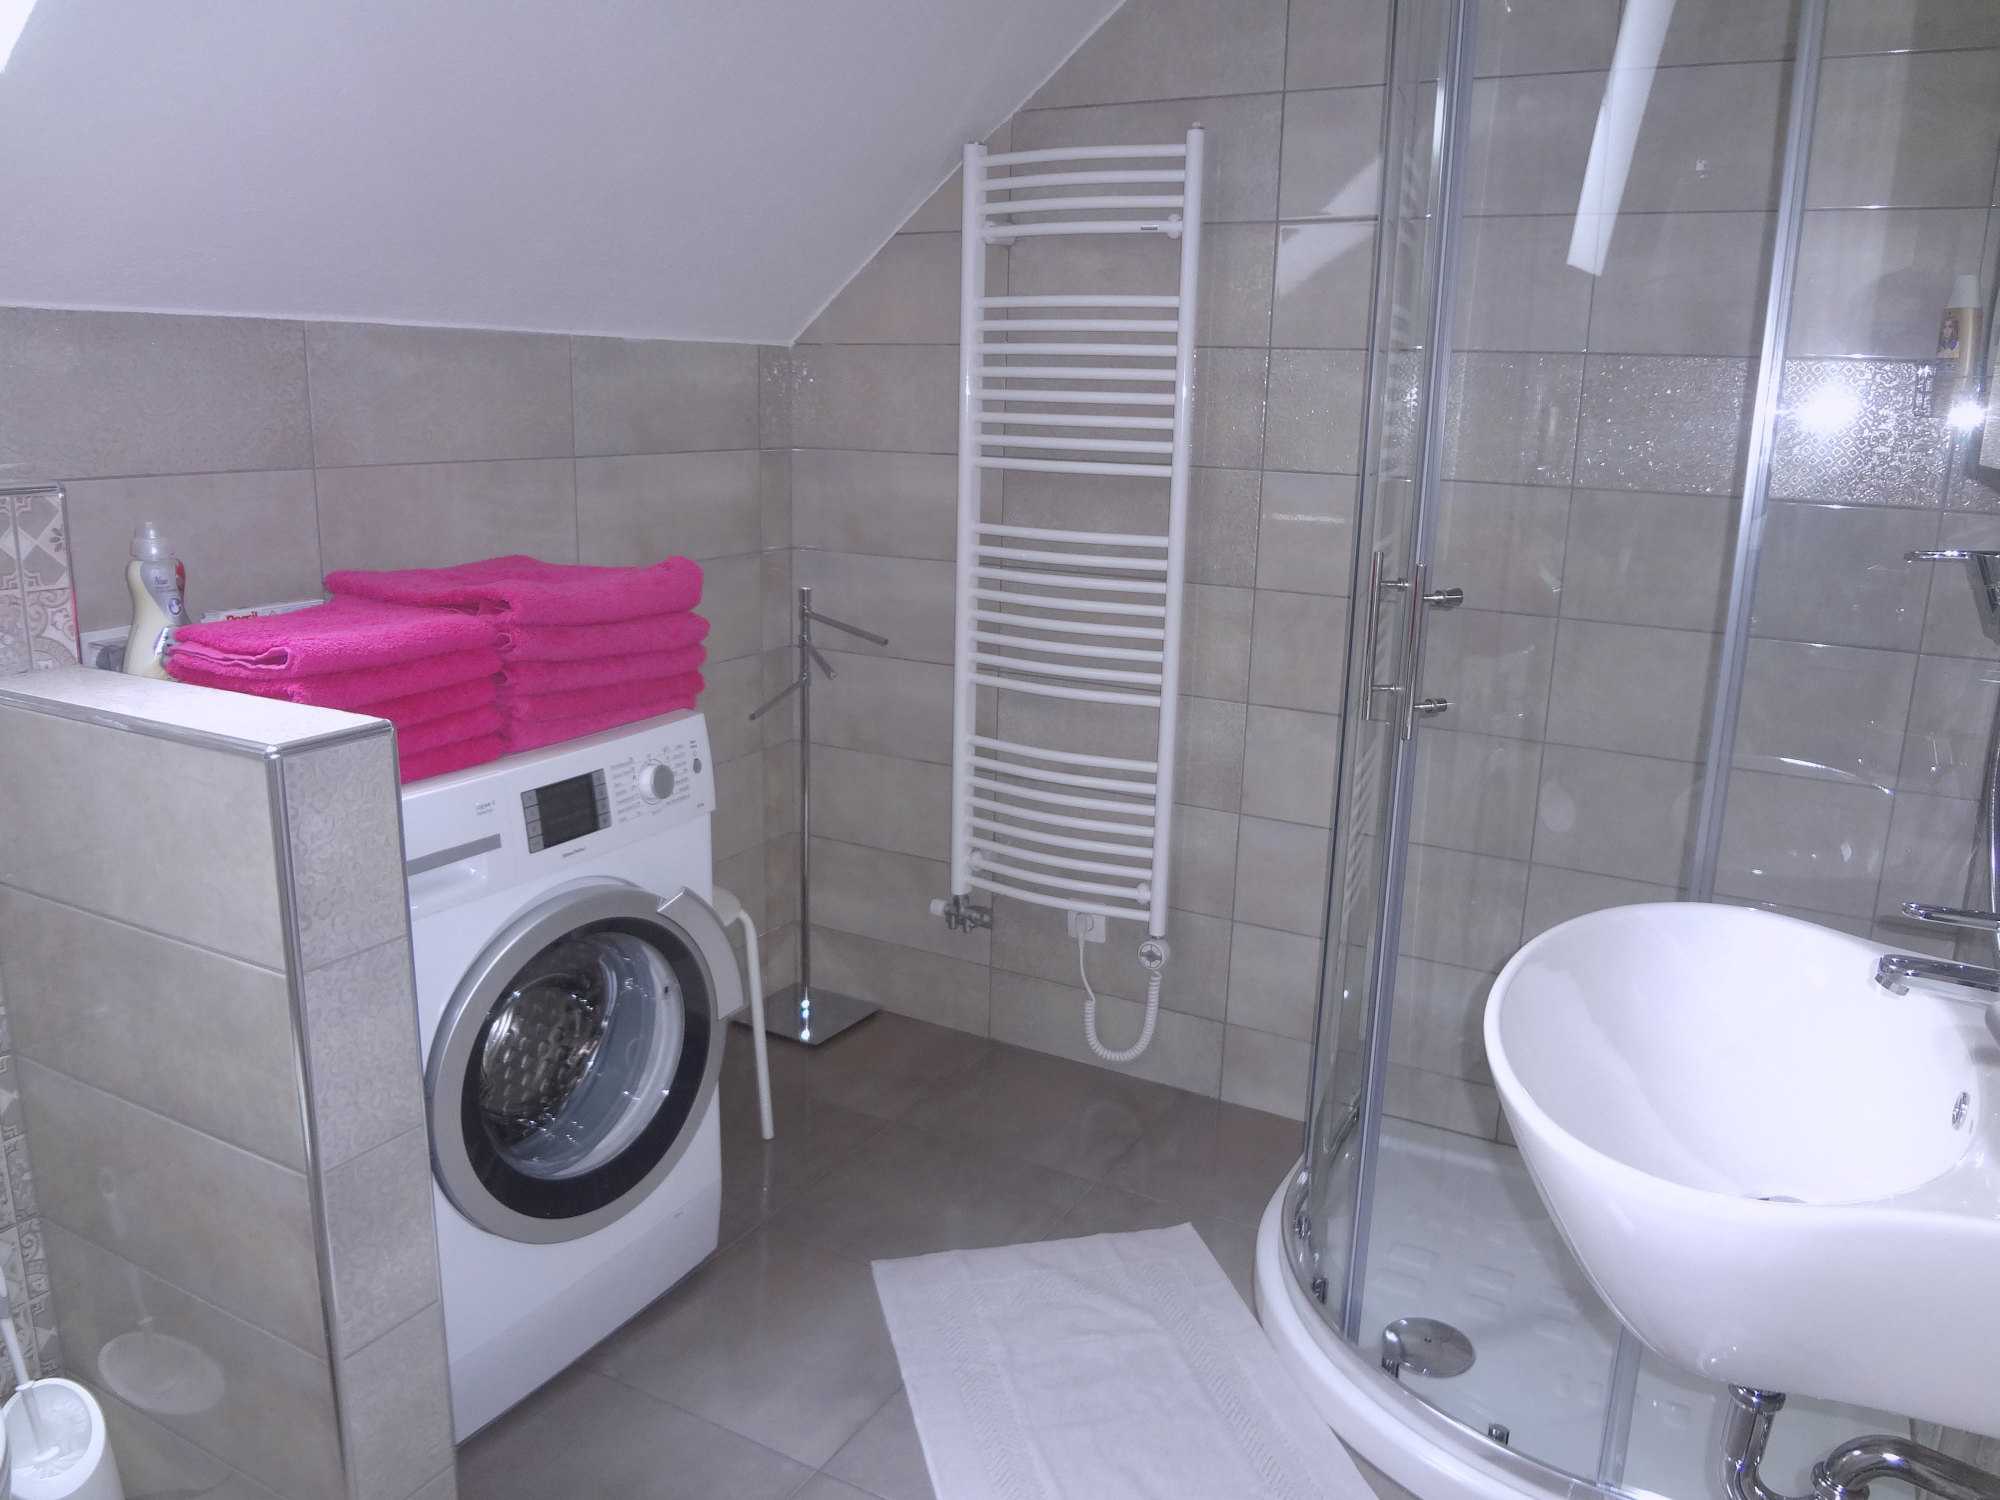 A glass shower stall and a washing machine in the bathroom of Apartments Fine Stay in Slovenia